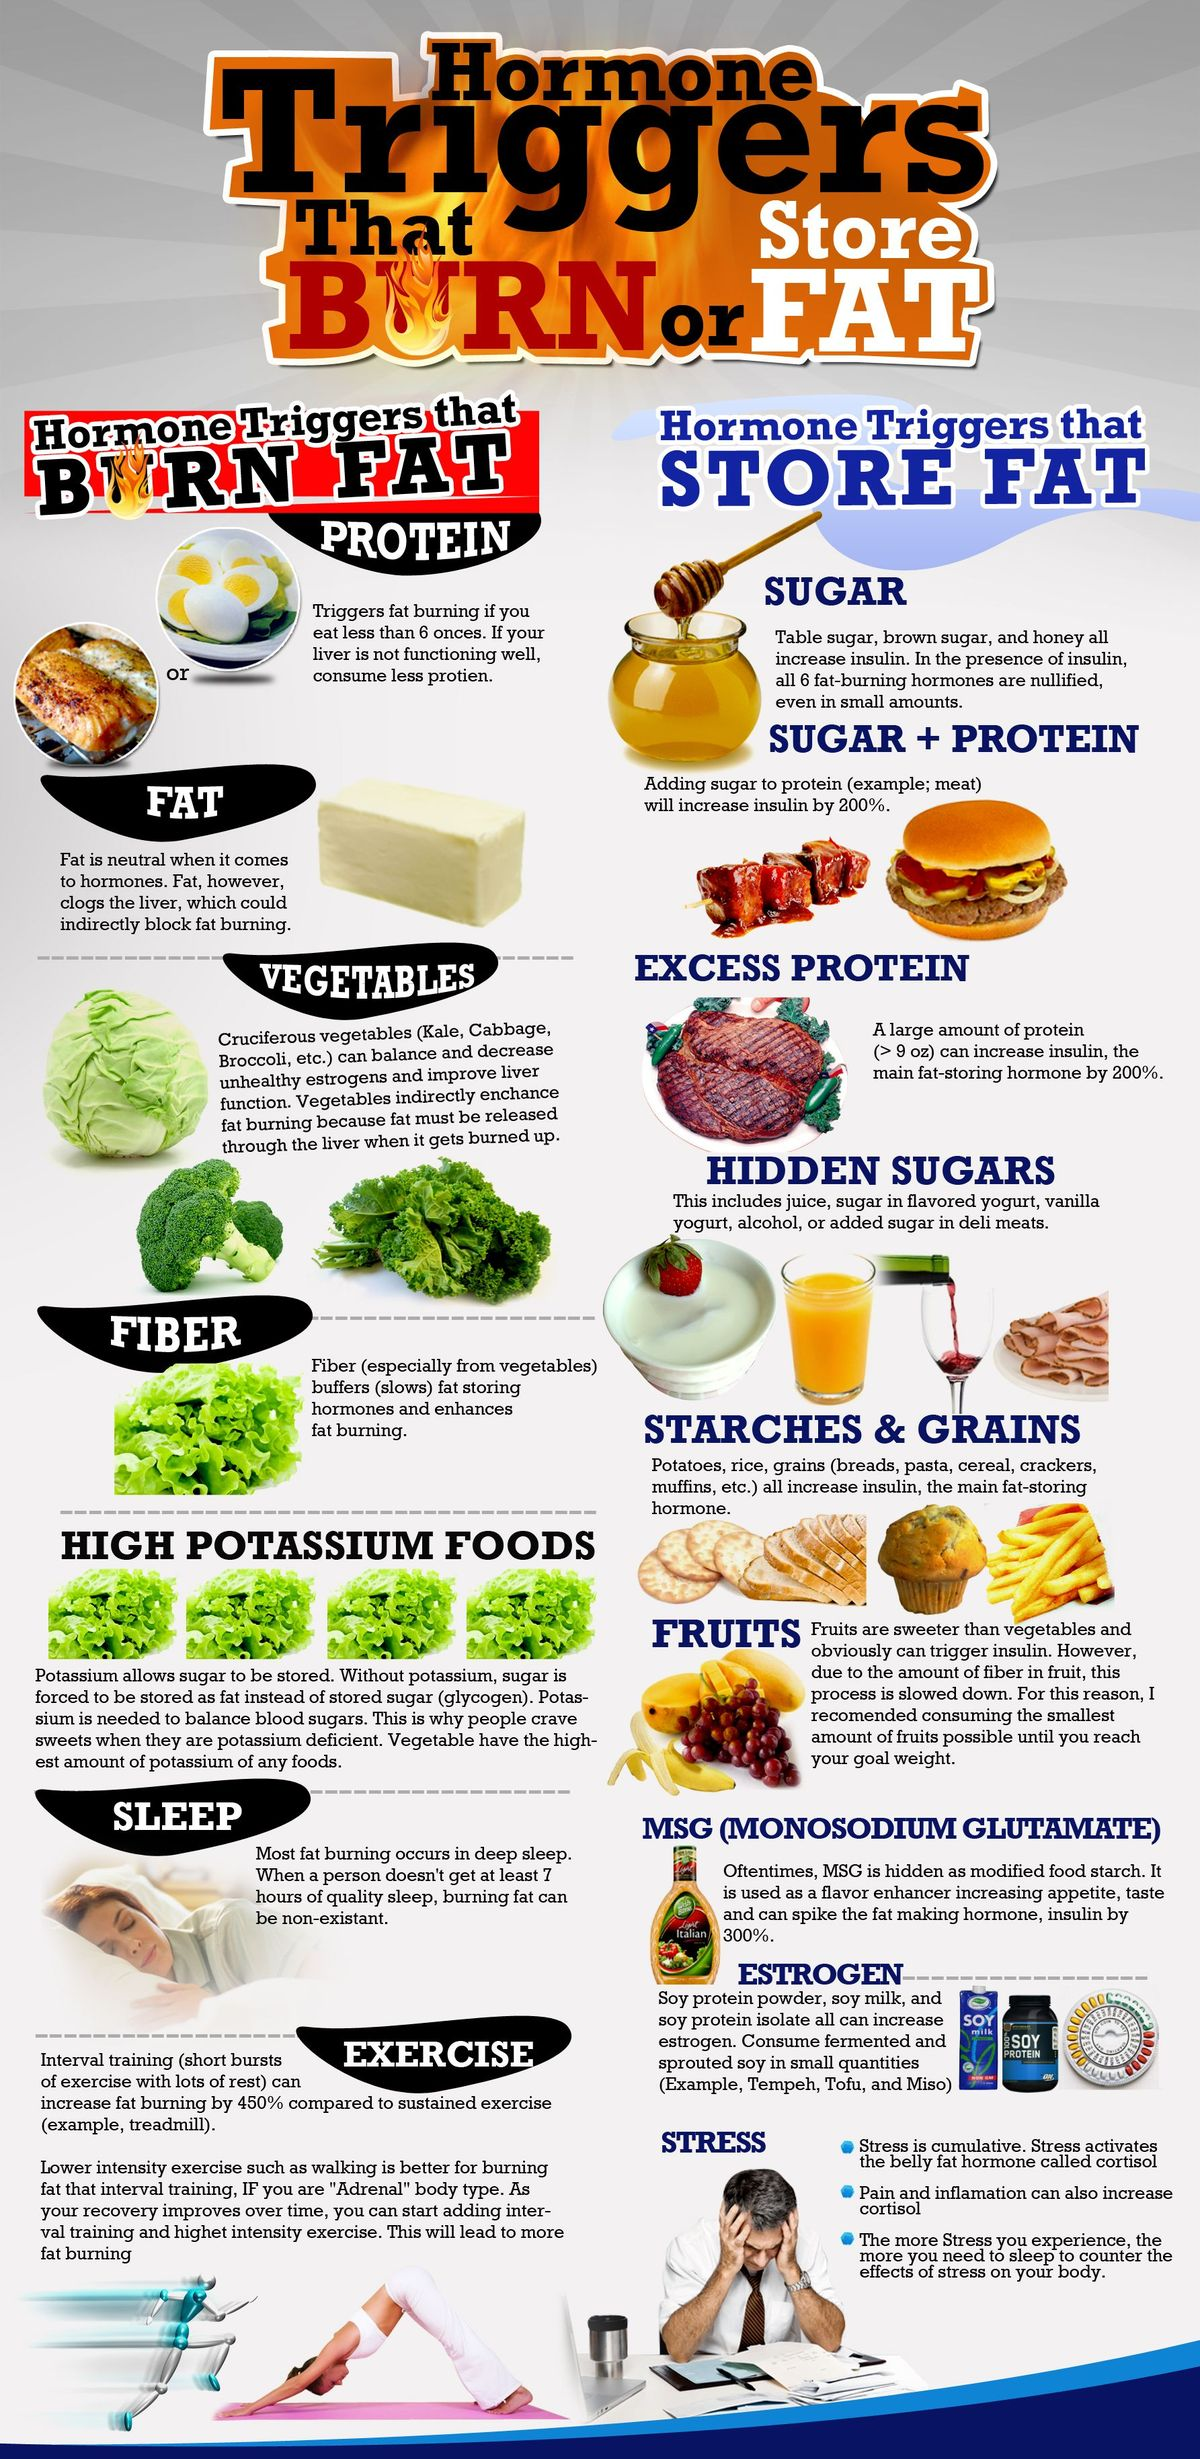 hormone triggers that burn fat or store fat